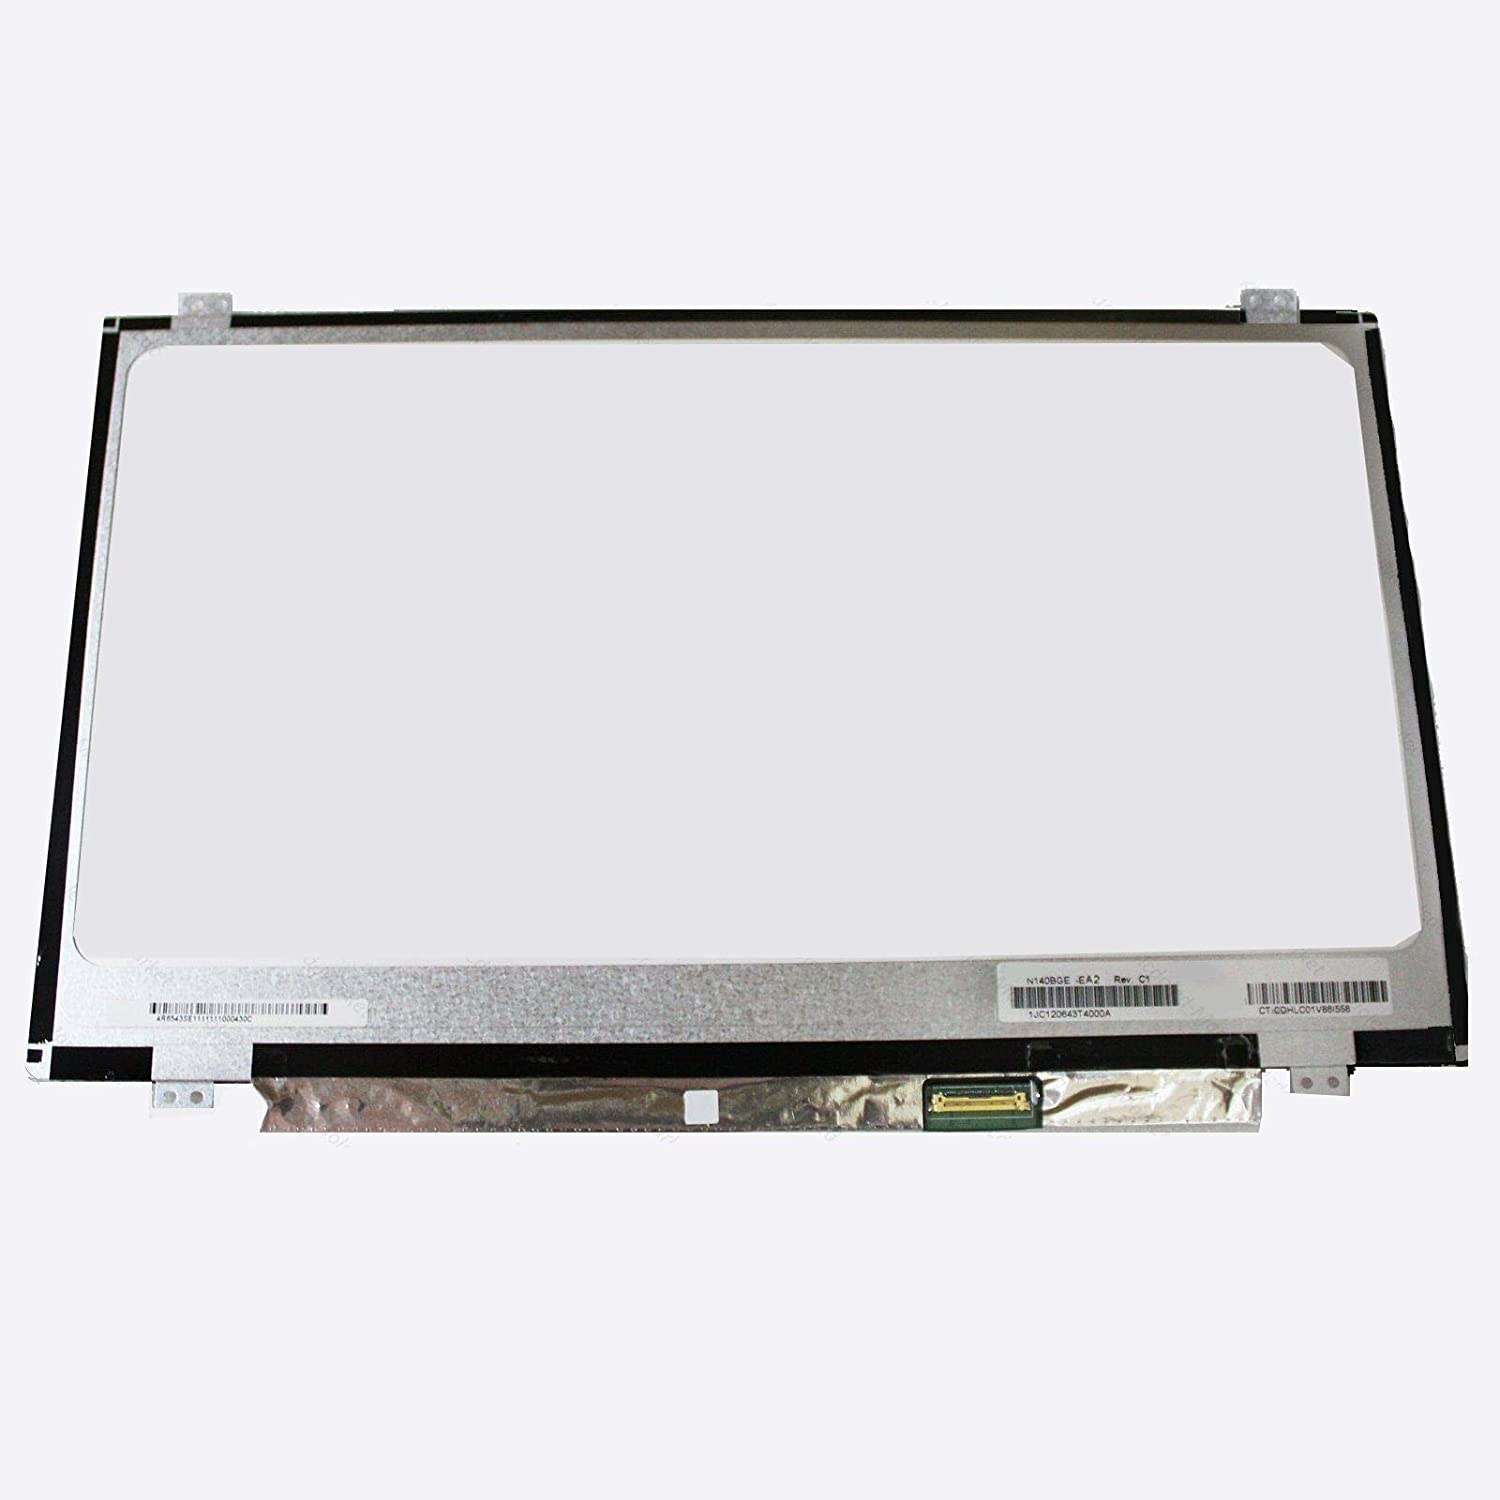 "Bblon 14"" LED LCD Screen Display Slim Panel for Acer Aspire E1-432 HD Replacement"